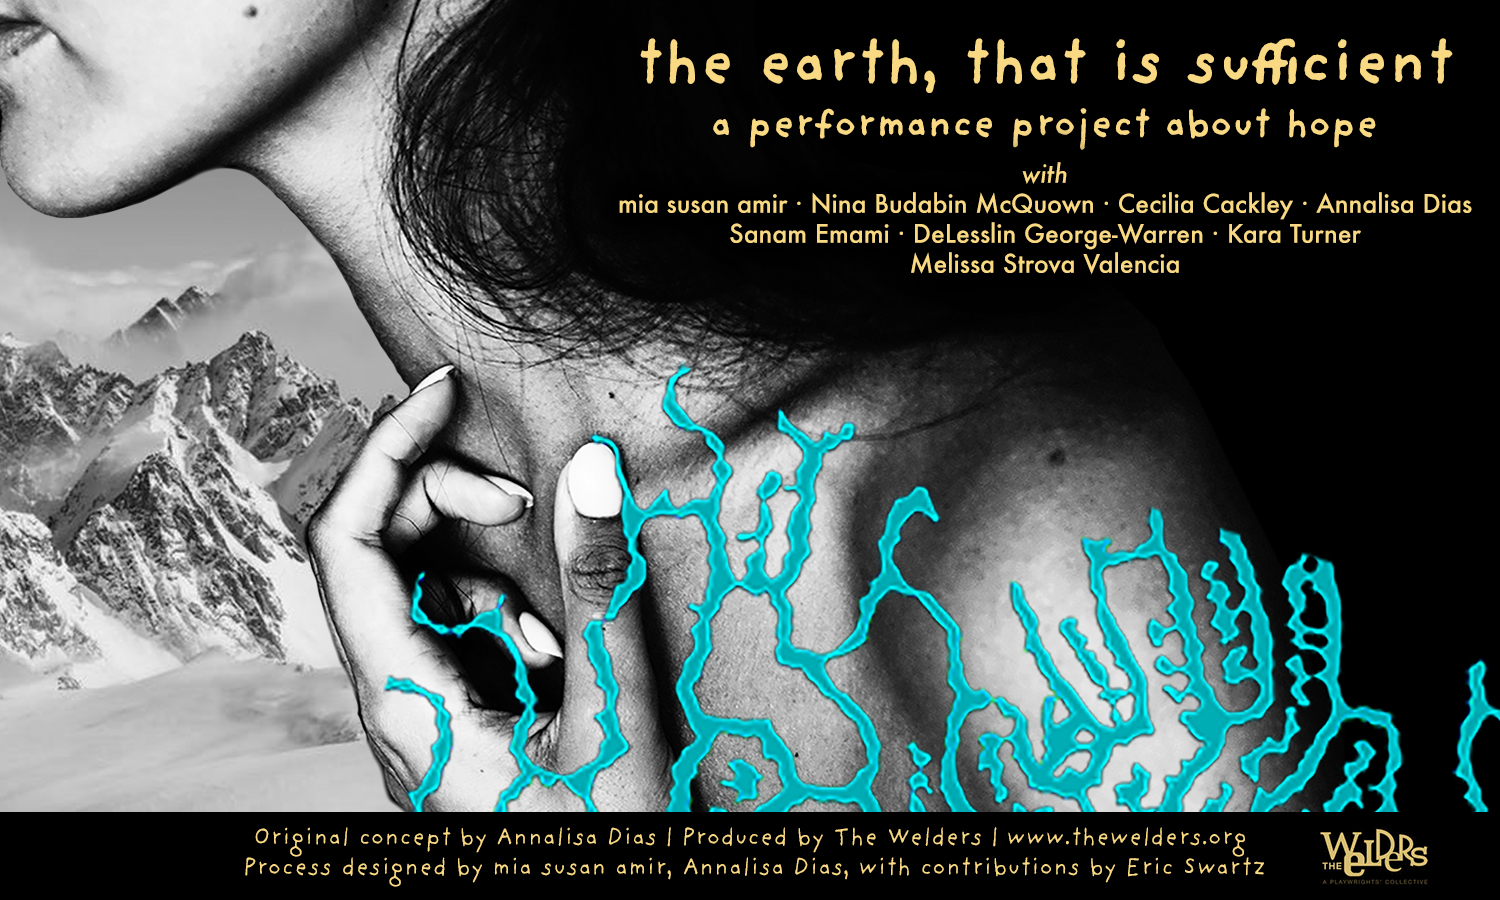 Poster for the earth, that is sufficient